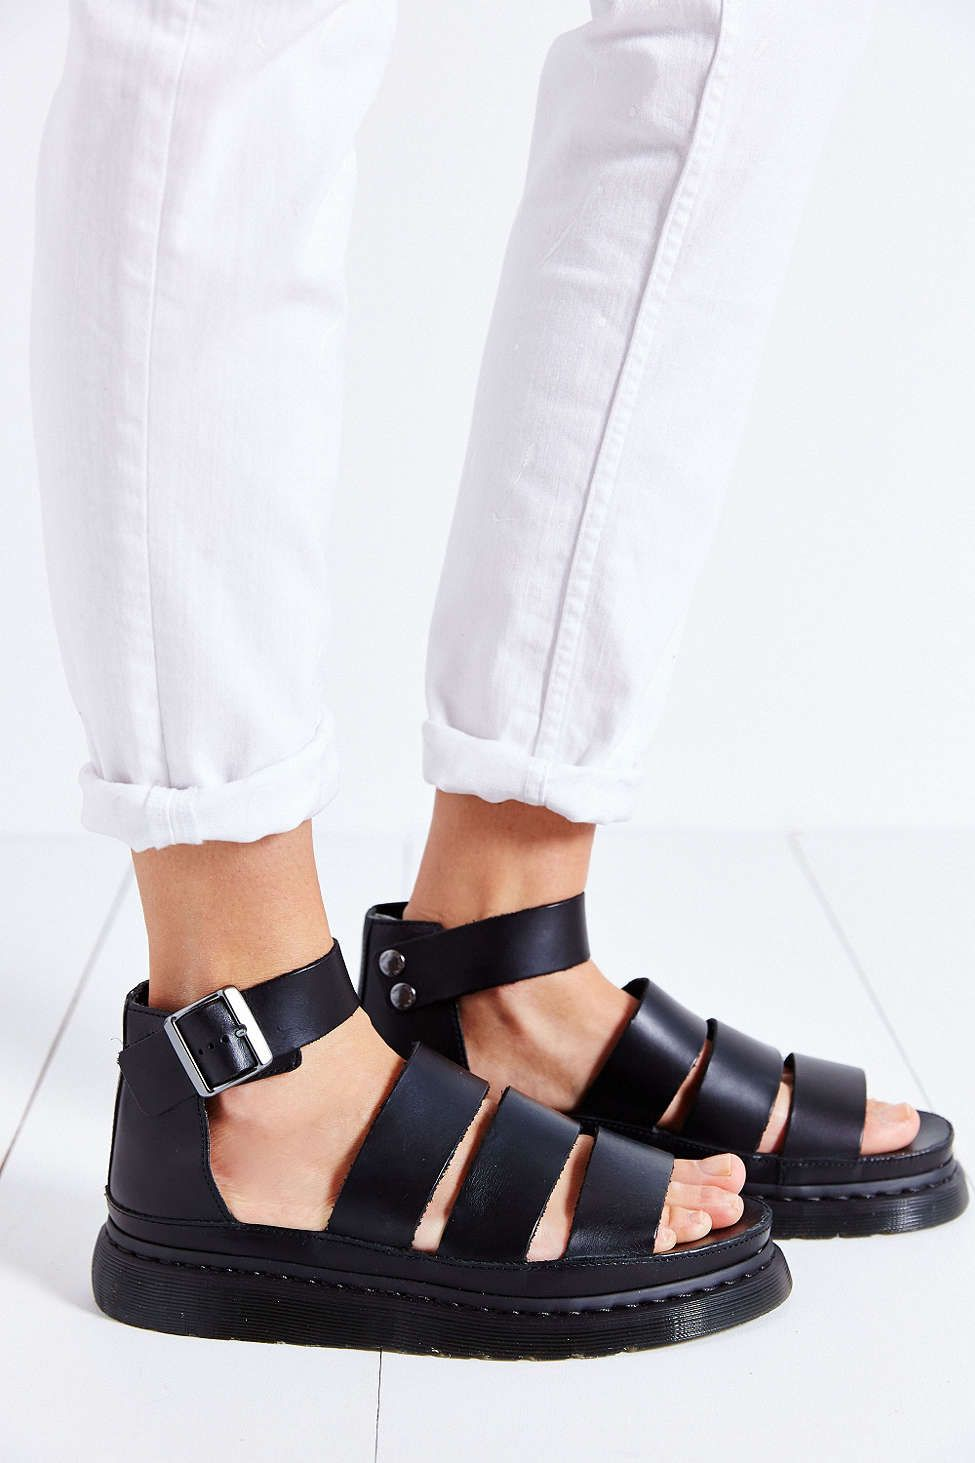 OutfittersShoozs Sandal Chunky Urban Strap Clarissa DrMartens qGUMpLzVS